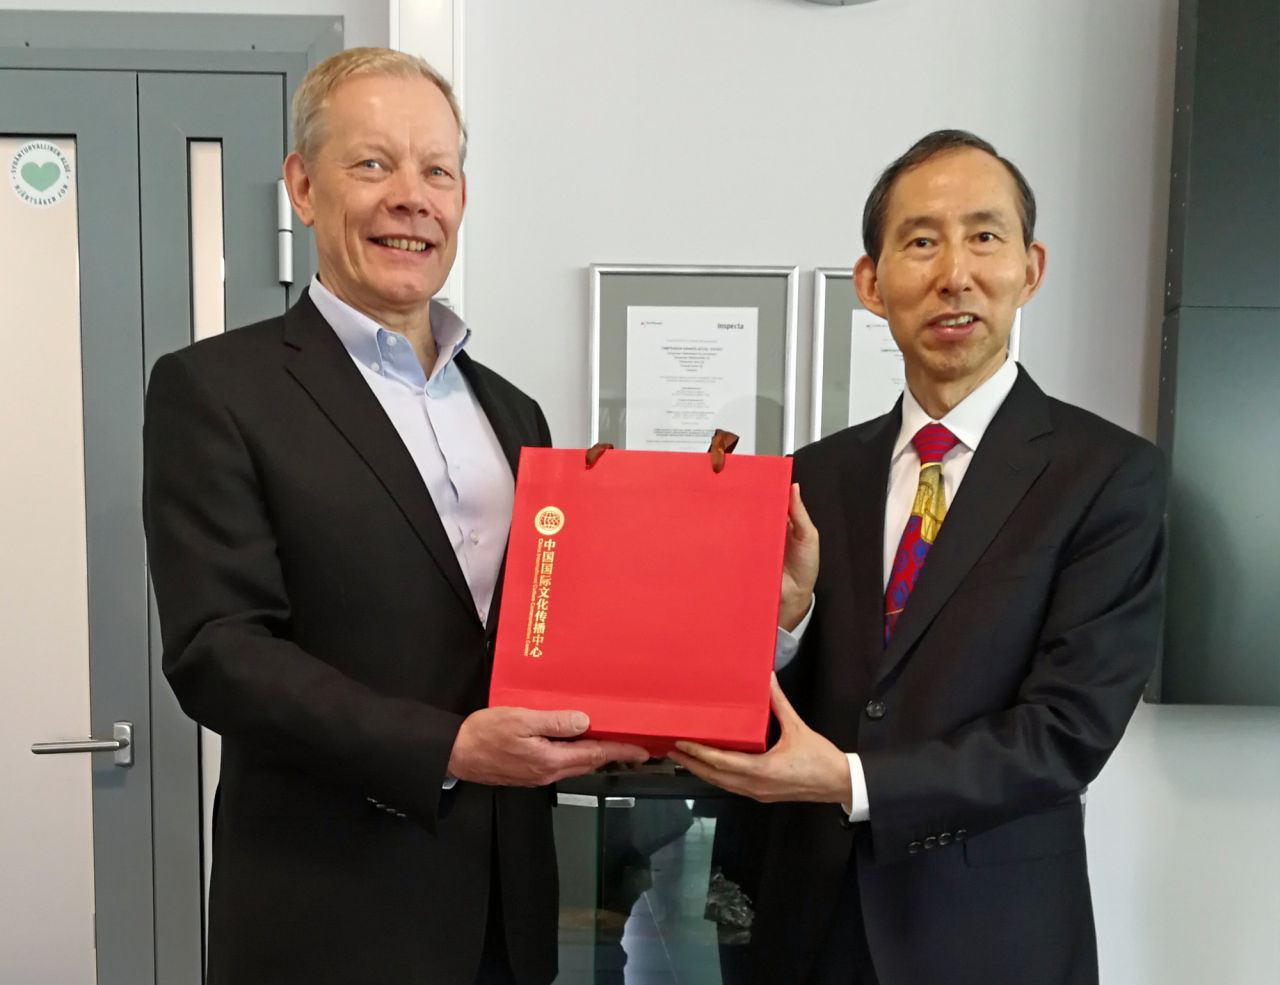 CICCC Executive Chairman Long Yuxiang and Harri Kallio, Pirkanmaan Jätehuolto CEO.